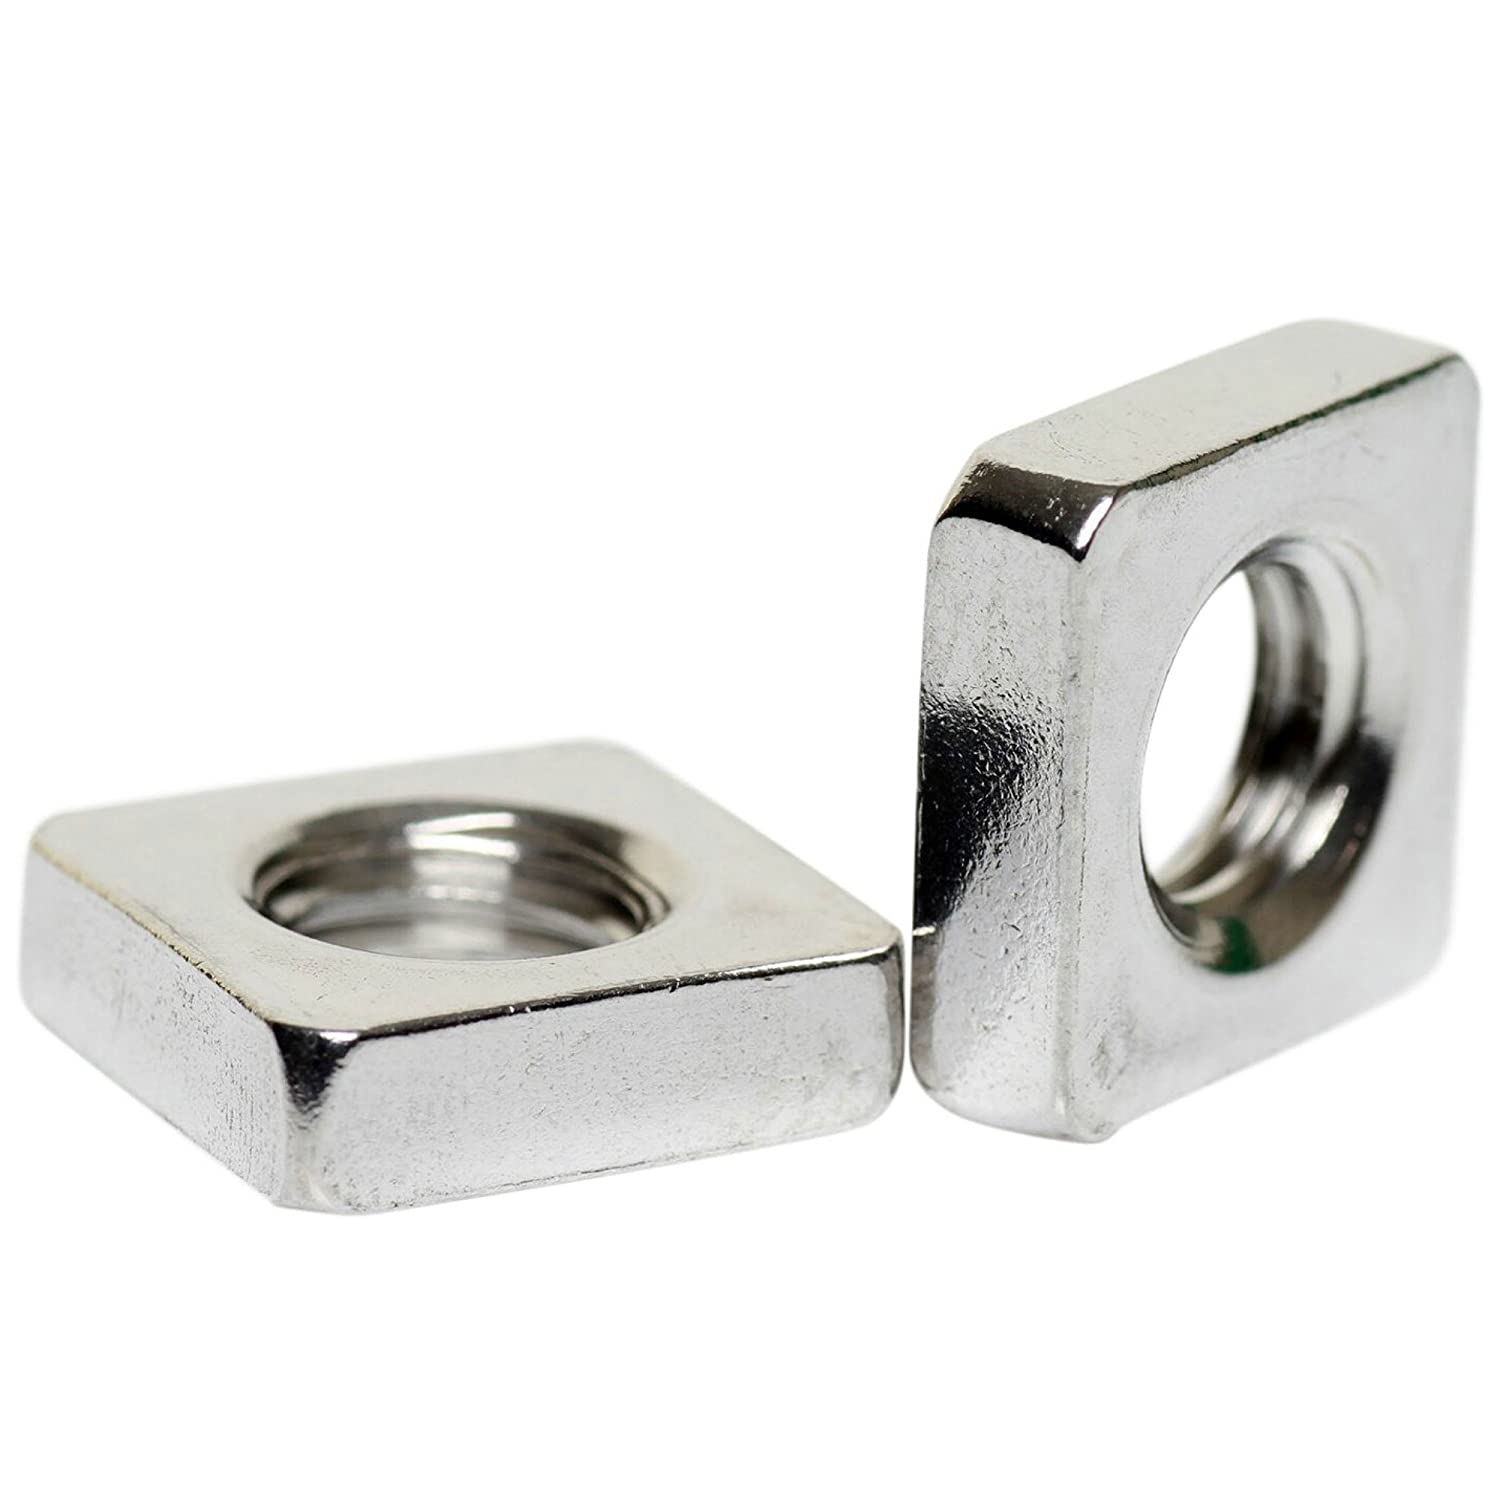 A2 Stainless Steel Square Nuts Thin Type DIN 562 M10 - 5 Pack Bolt Base